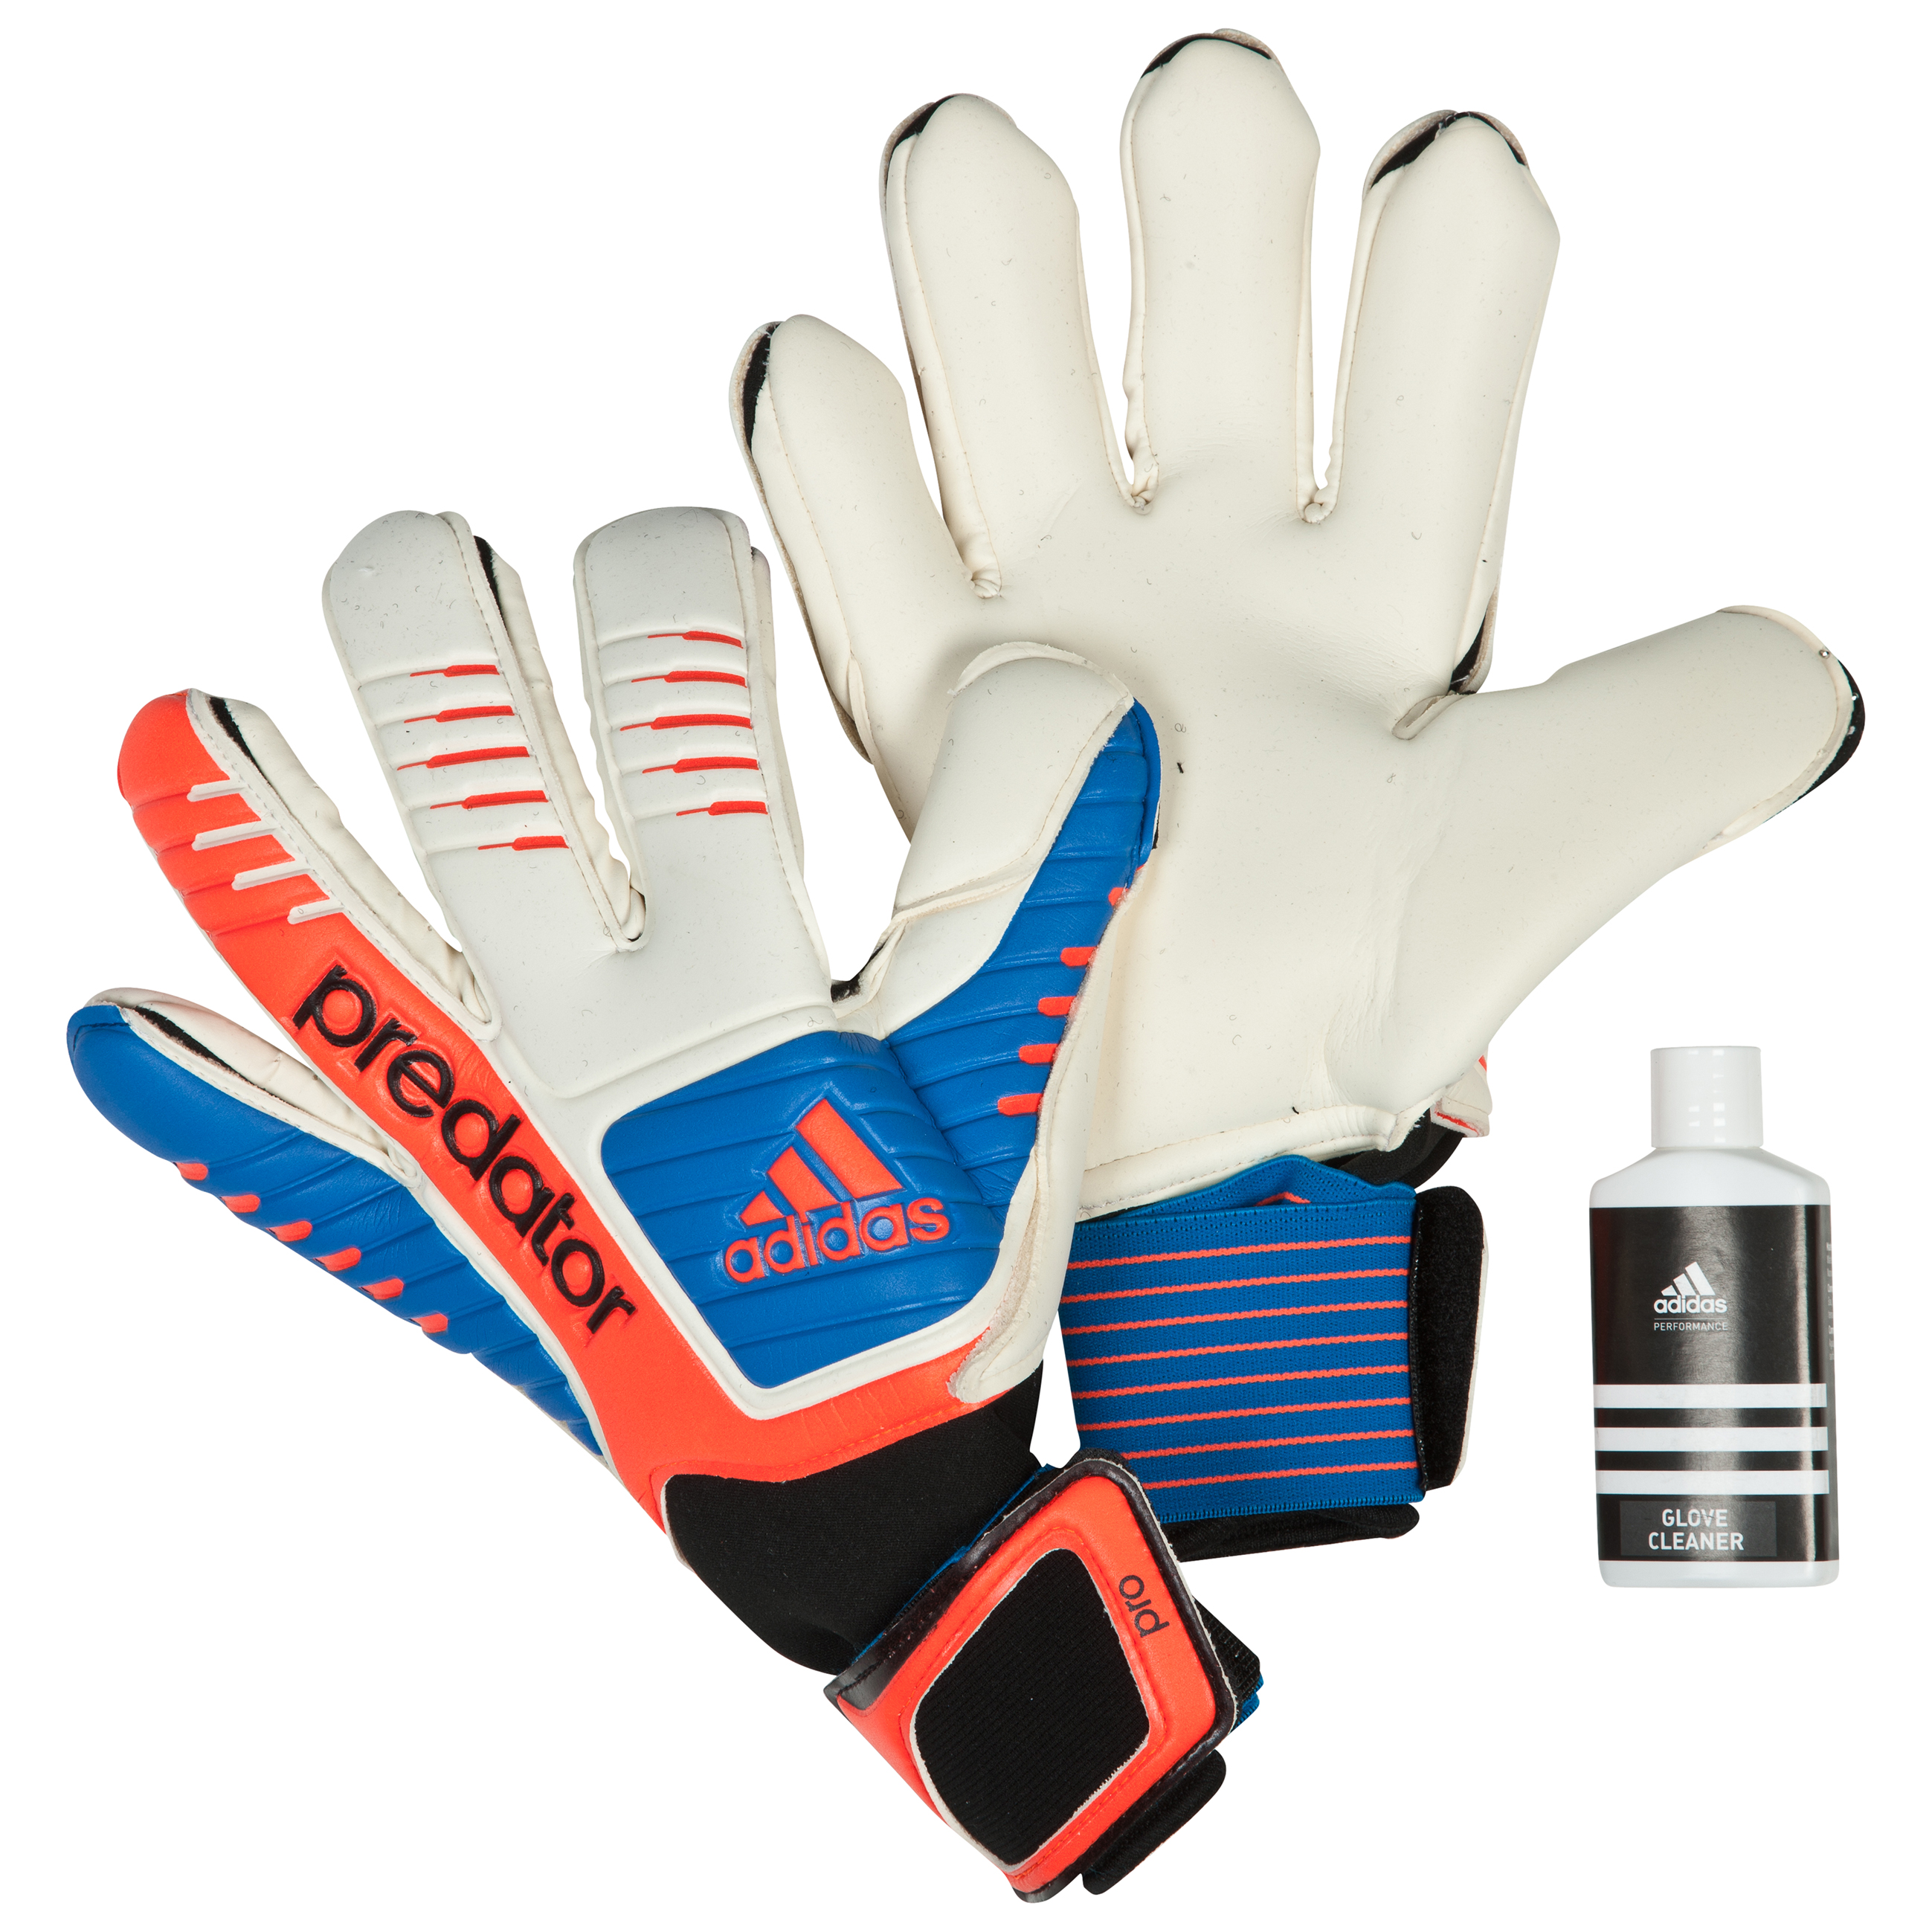 Adidas Predator Pro Goalkeeper Gloves - White/Bright Blue/Infrared